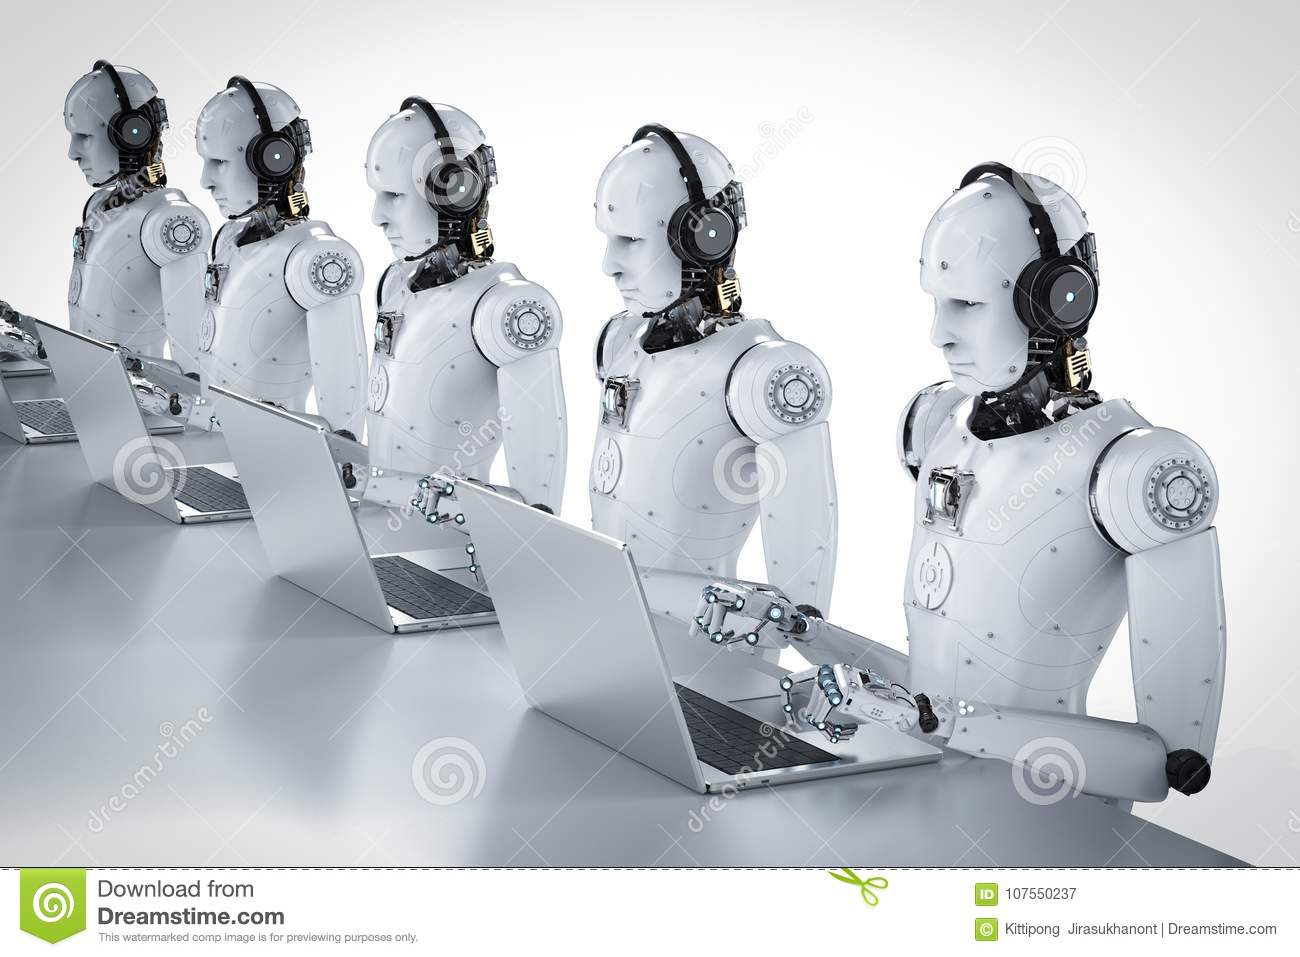 Call center dei robot